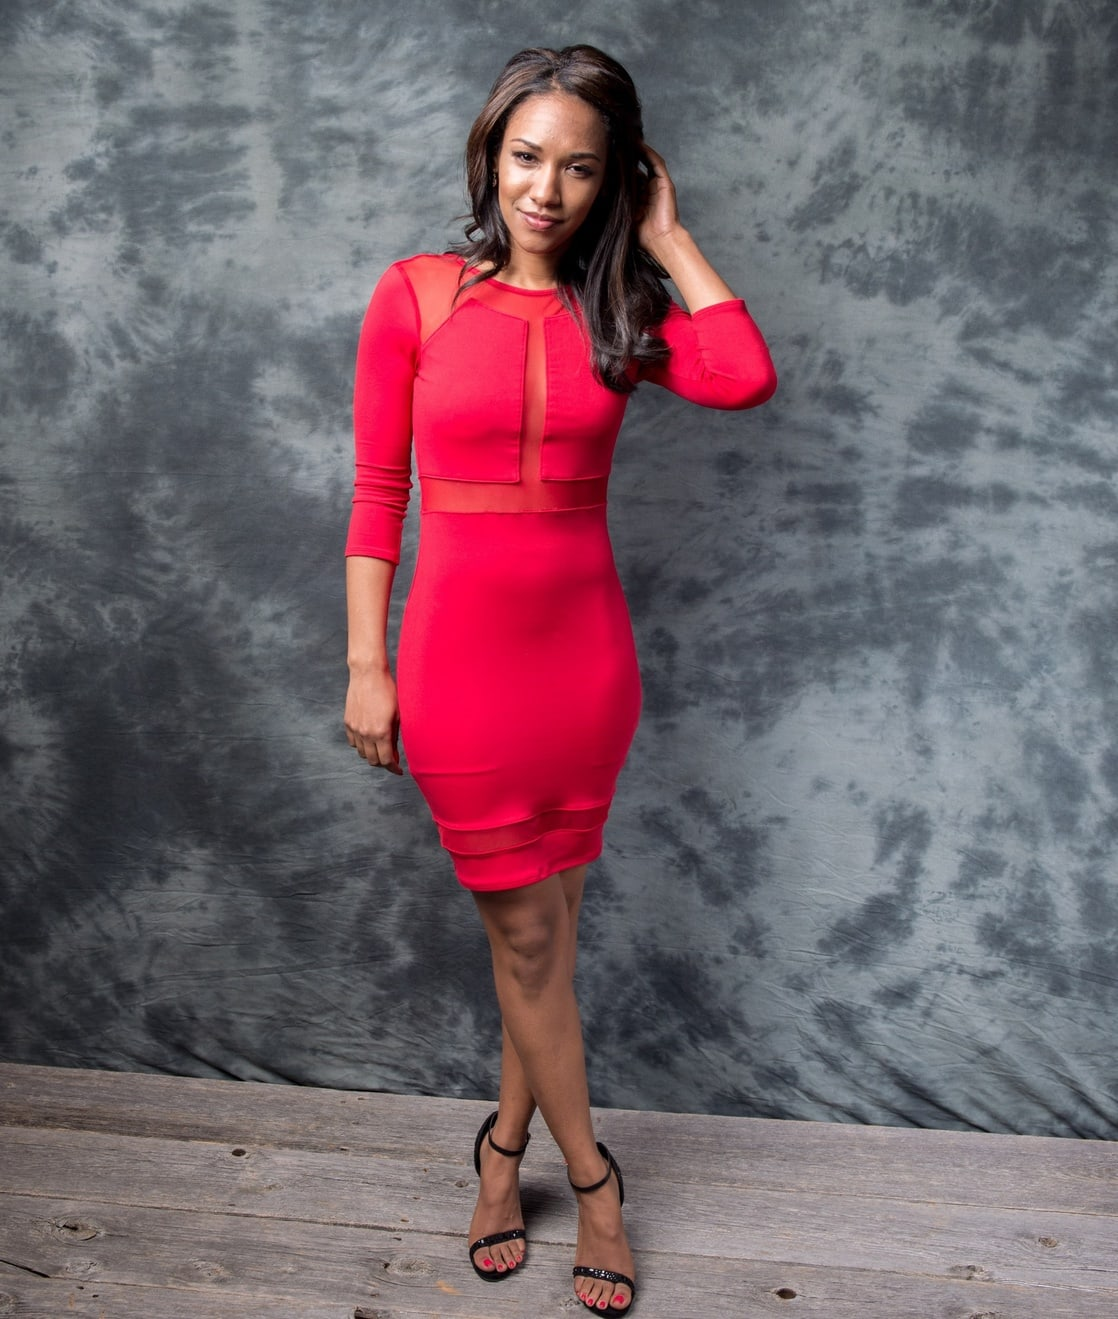 Candice Patton Red Hot